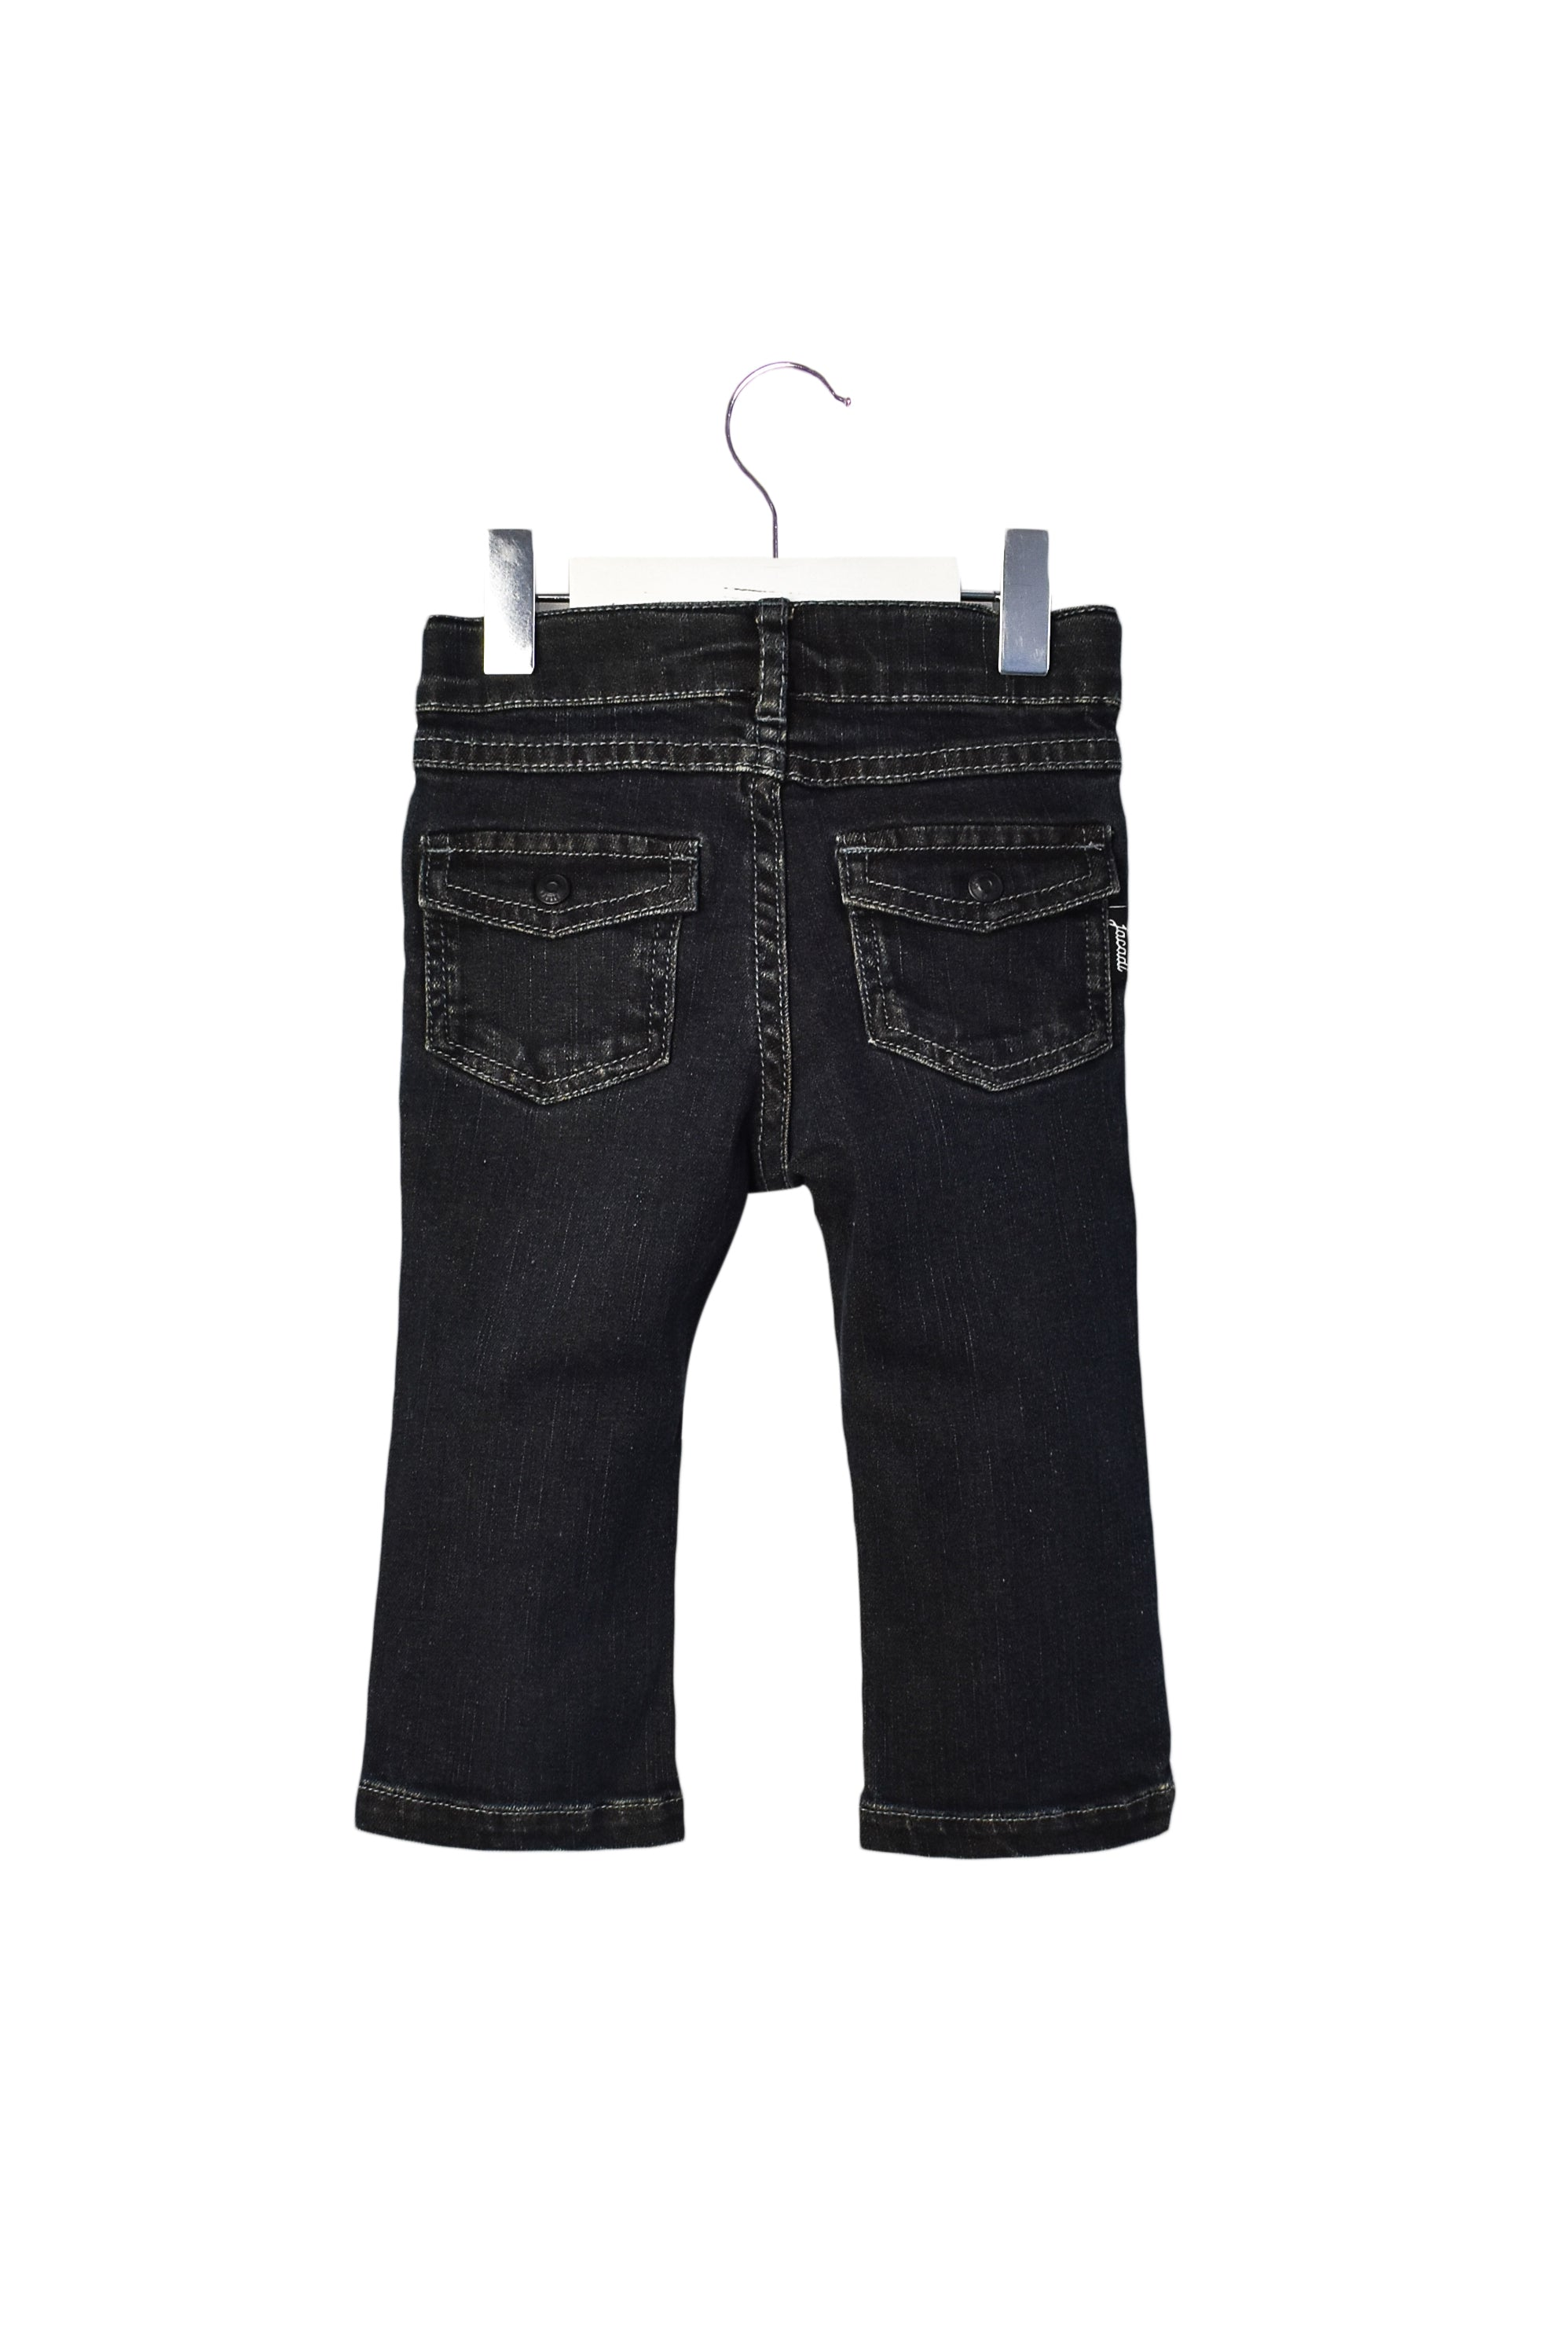 10008181 Jacadi Baby~Jeans 12M at Retykle